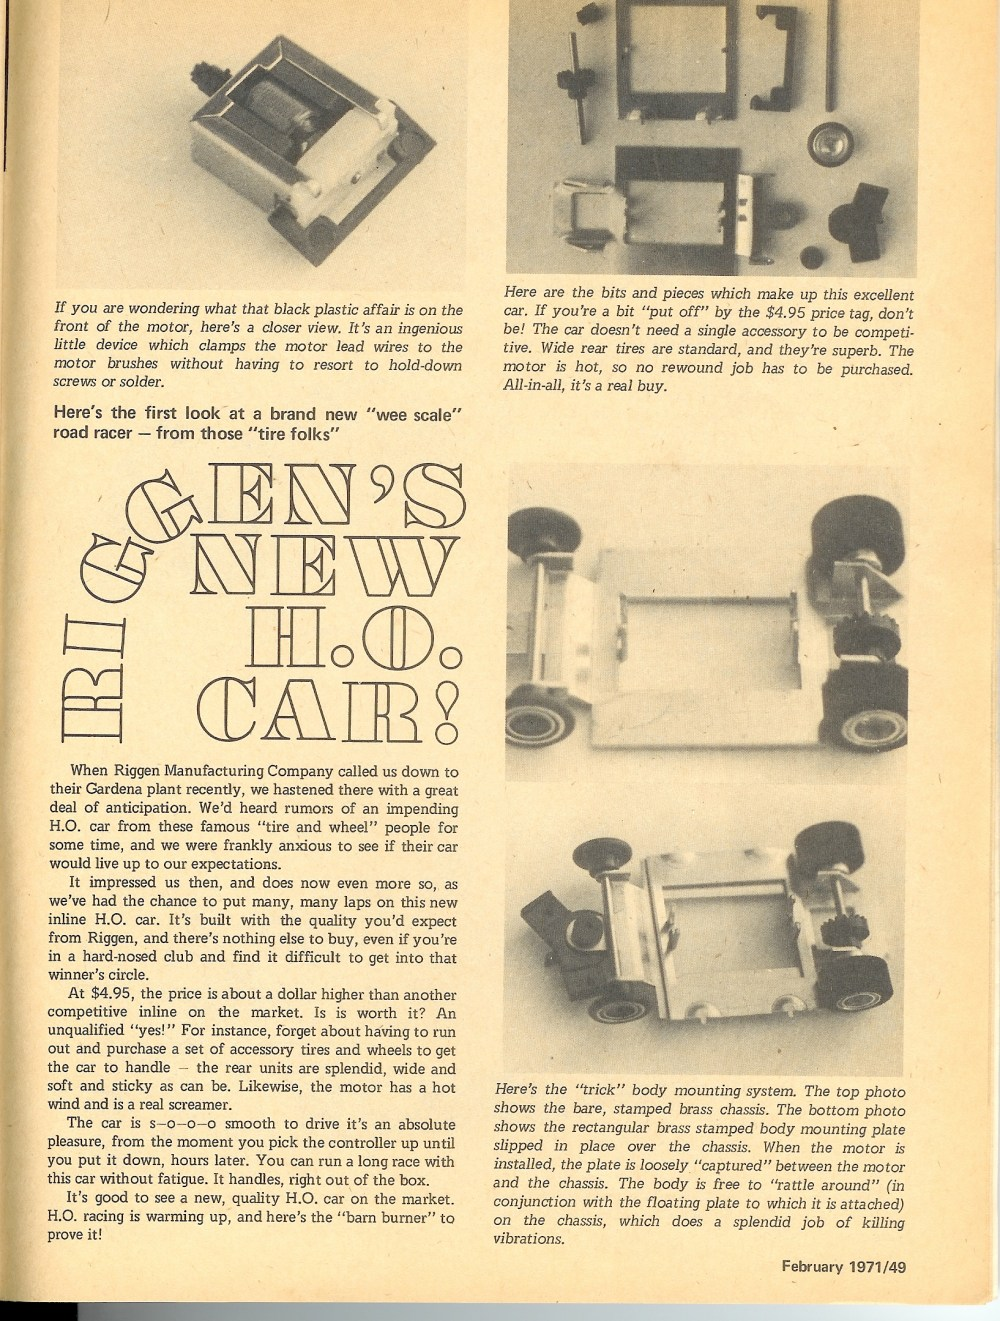 medium resolution of in late 1970 riggen industries of torrance california and later gardena california introduced a new ho scale slot car for competitive slot car racing